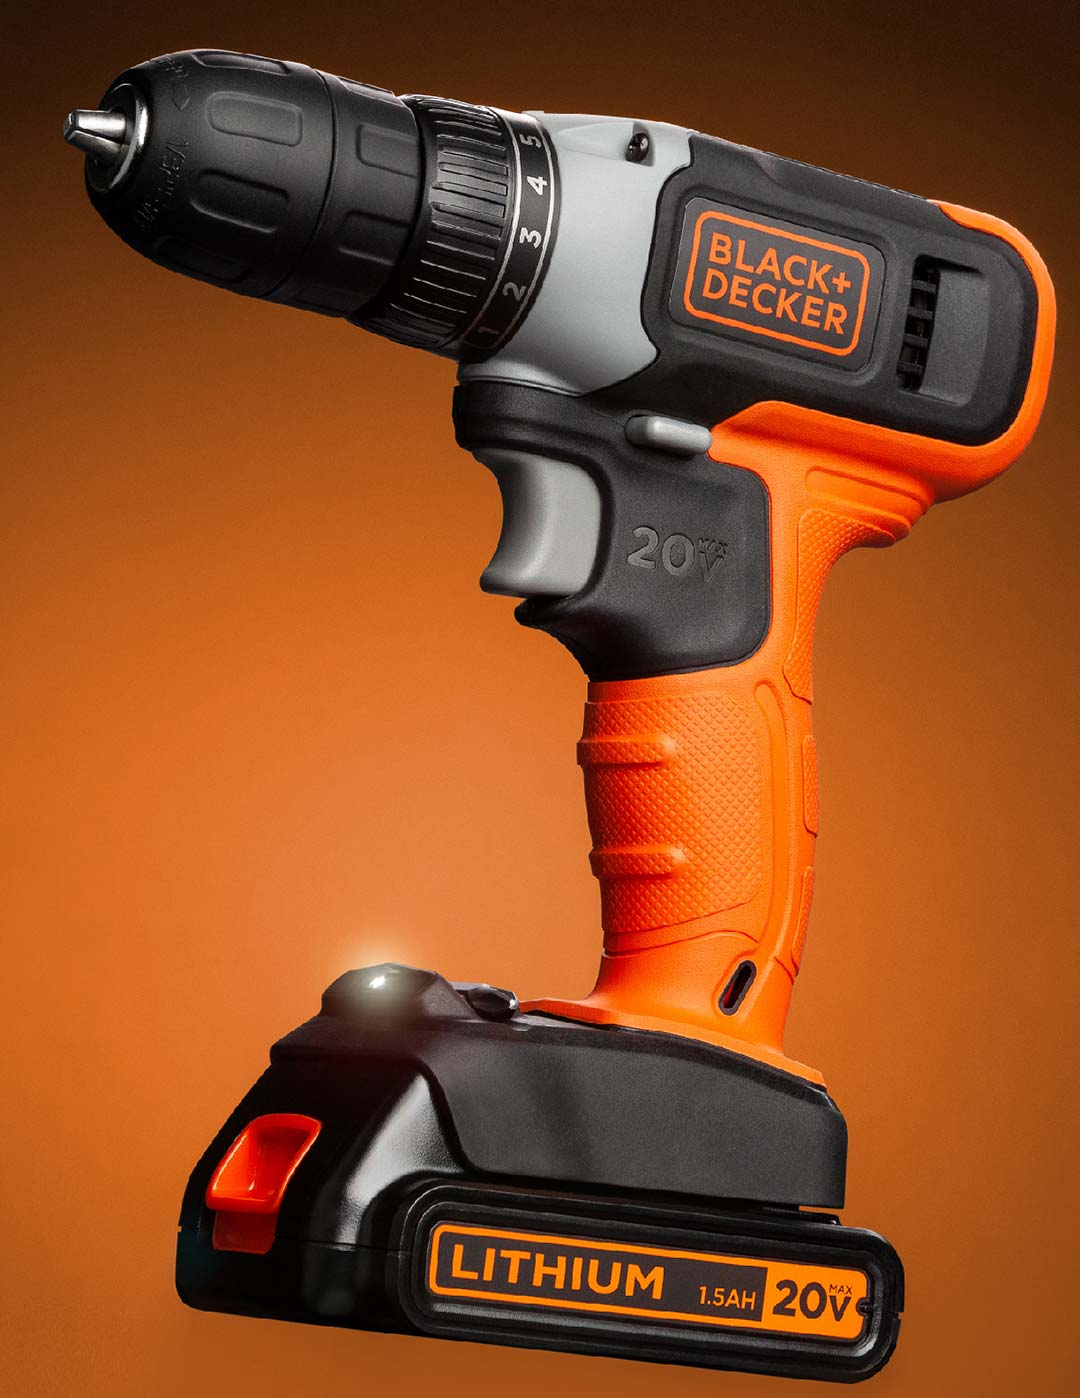 Spec shoot for Black and Decker cordless drill done in studio at Greywood Photography